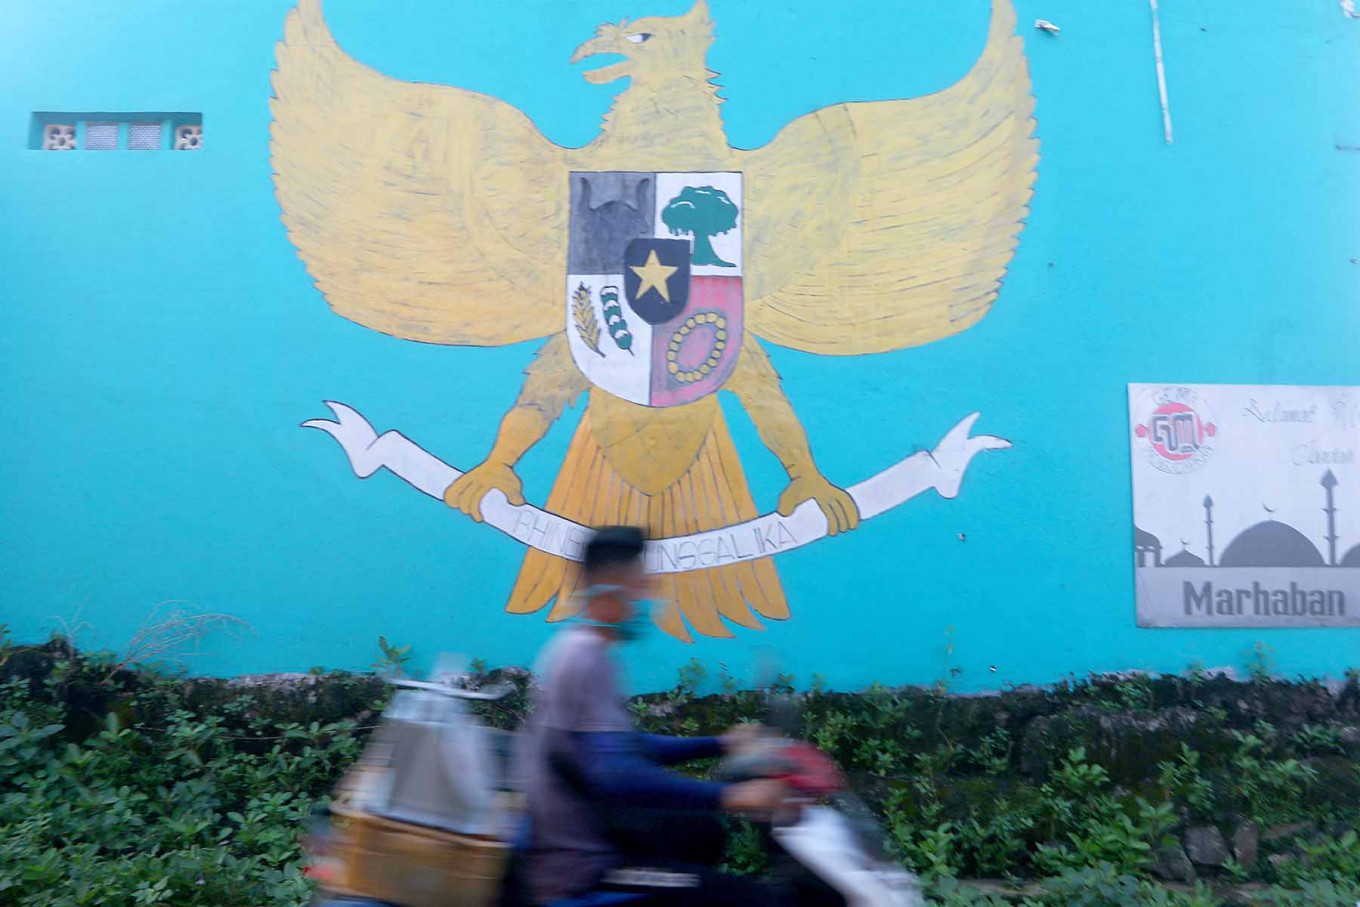 Govt proposes new bill on state ideology agency, delays controversial bill on Pancasila